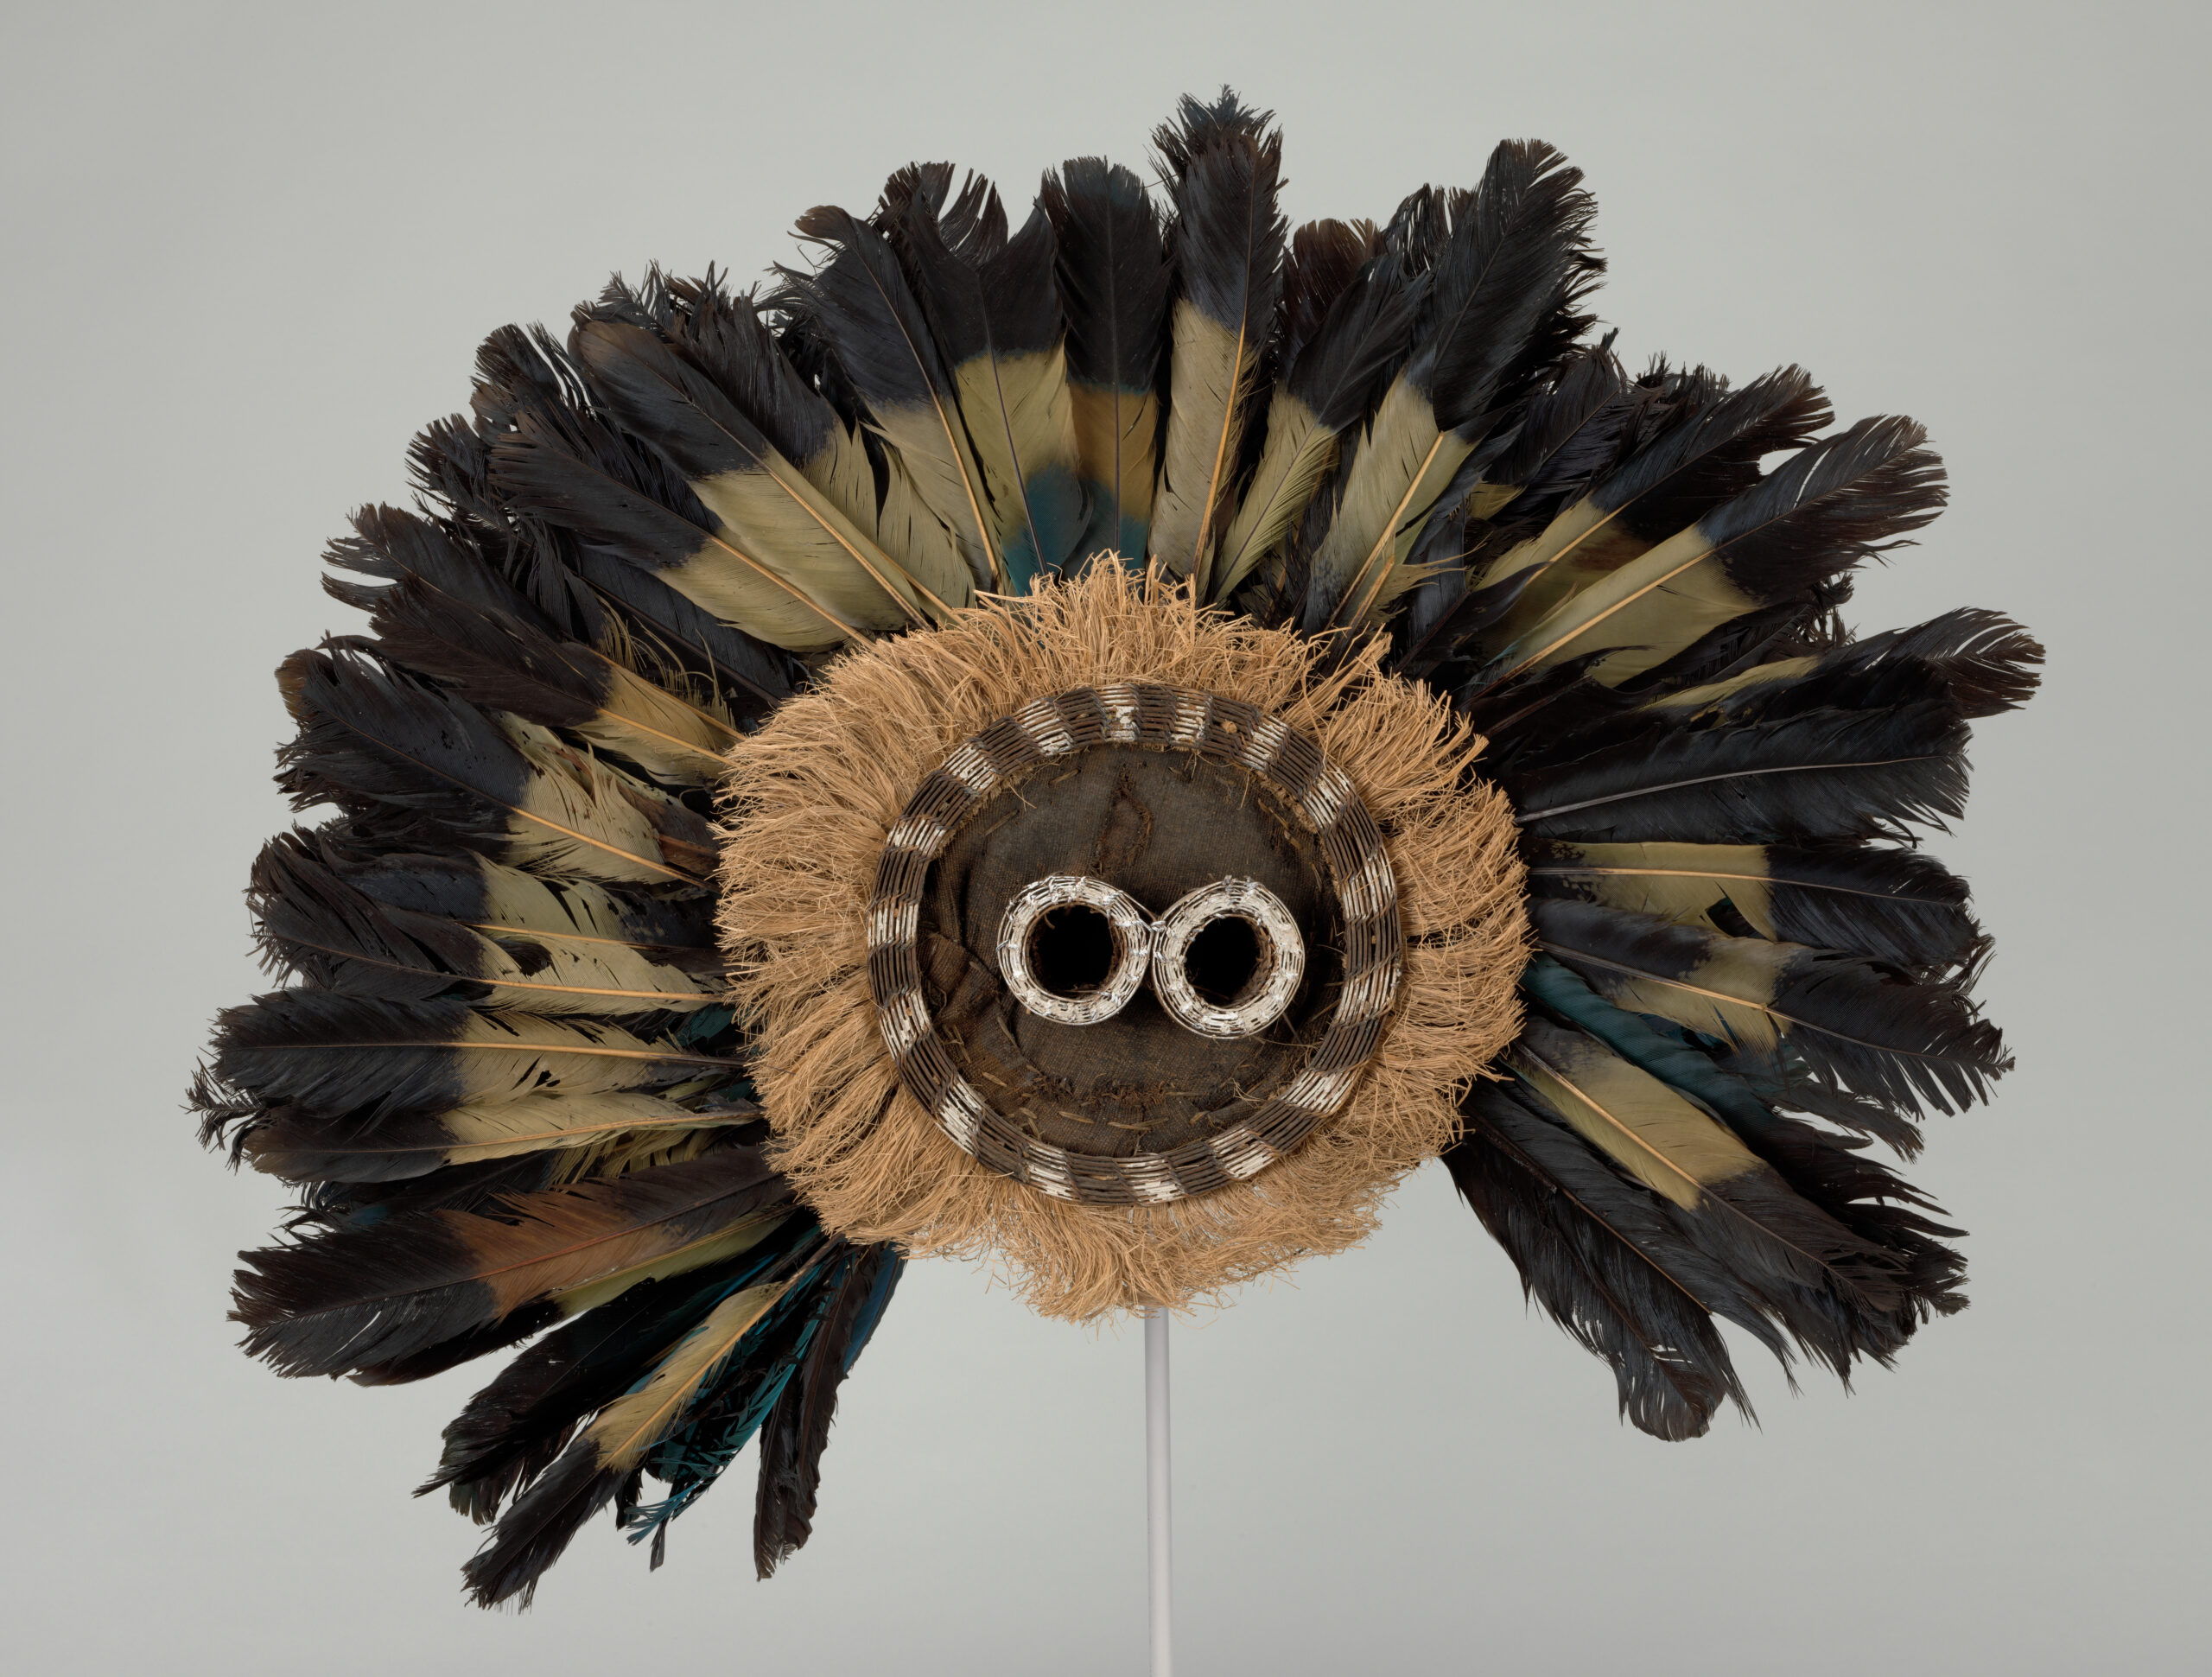 Unidentified Pende artist. Gitenga Mask. Pende region, Democratic Republic of the Congo. Mid-20th century. The Baltimore Museum of Art: Purchased as the gift of Amy Gould and Matthew Polk, Gibson Island, Maryland, BMA 2015.148